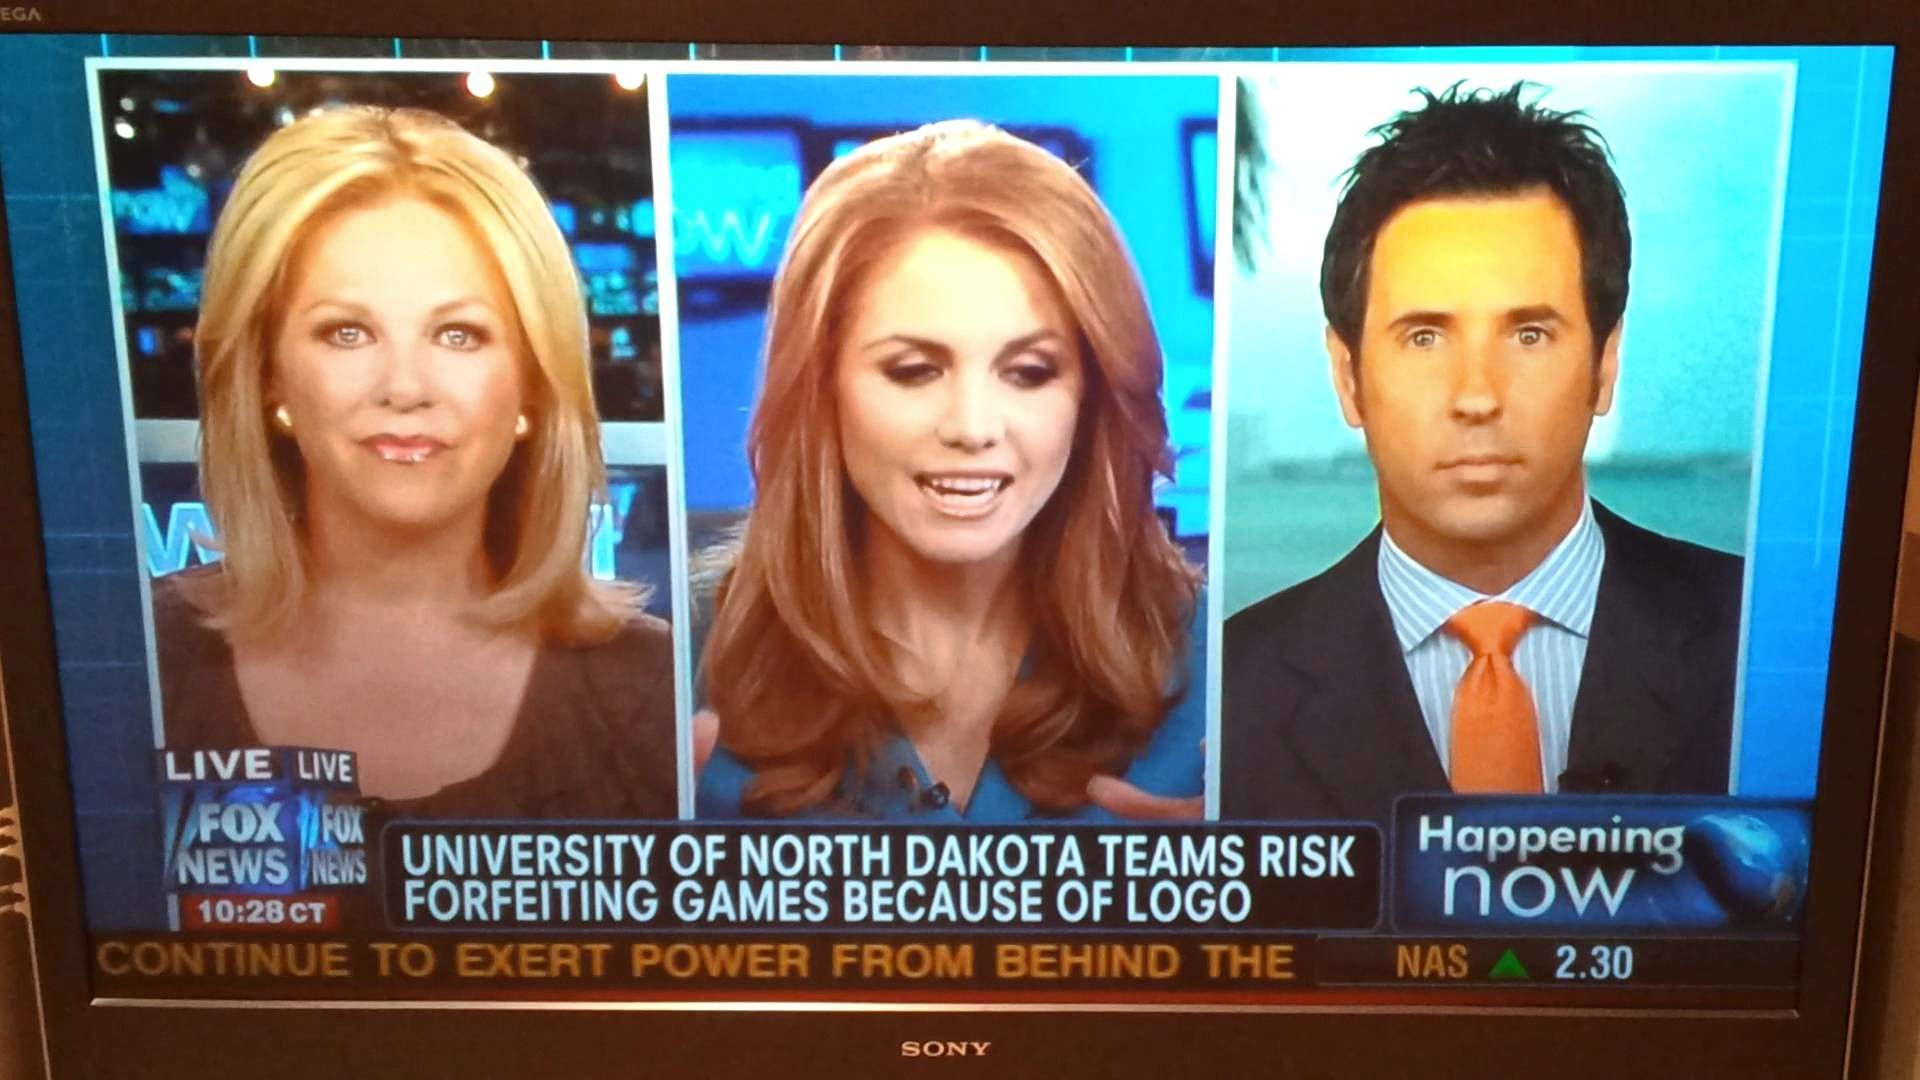 1920x1080 Fighting Sioux Nickname Story on Fox News